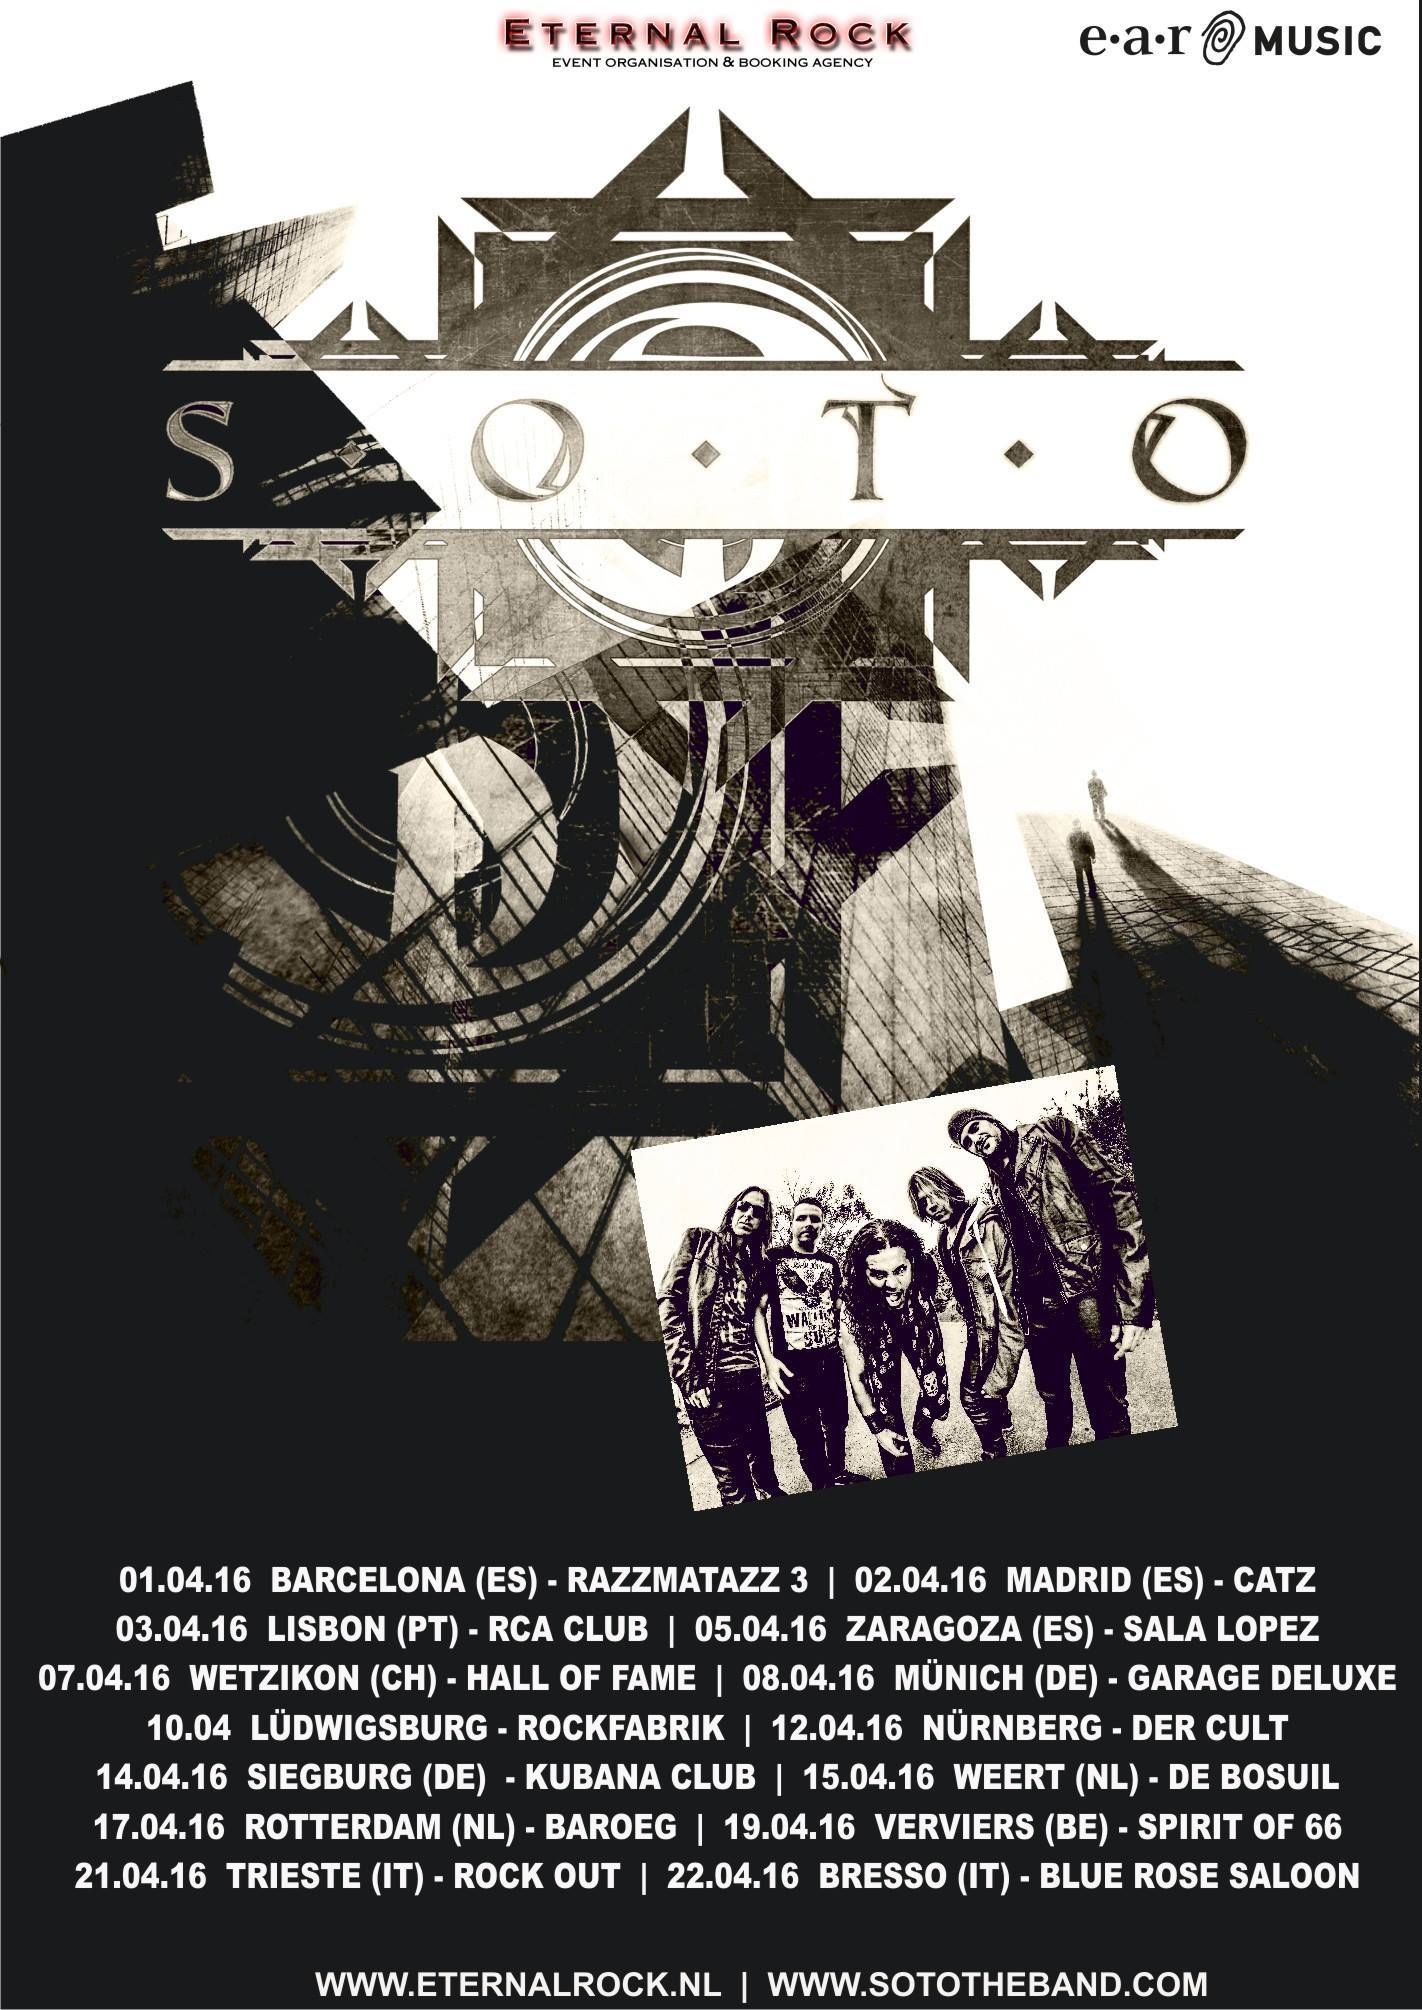 Jeff Scott Soto Tour 2016